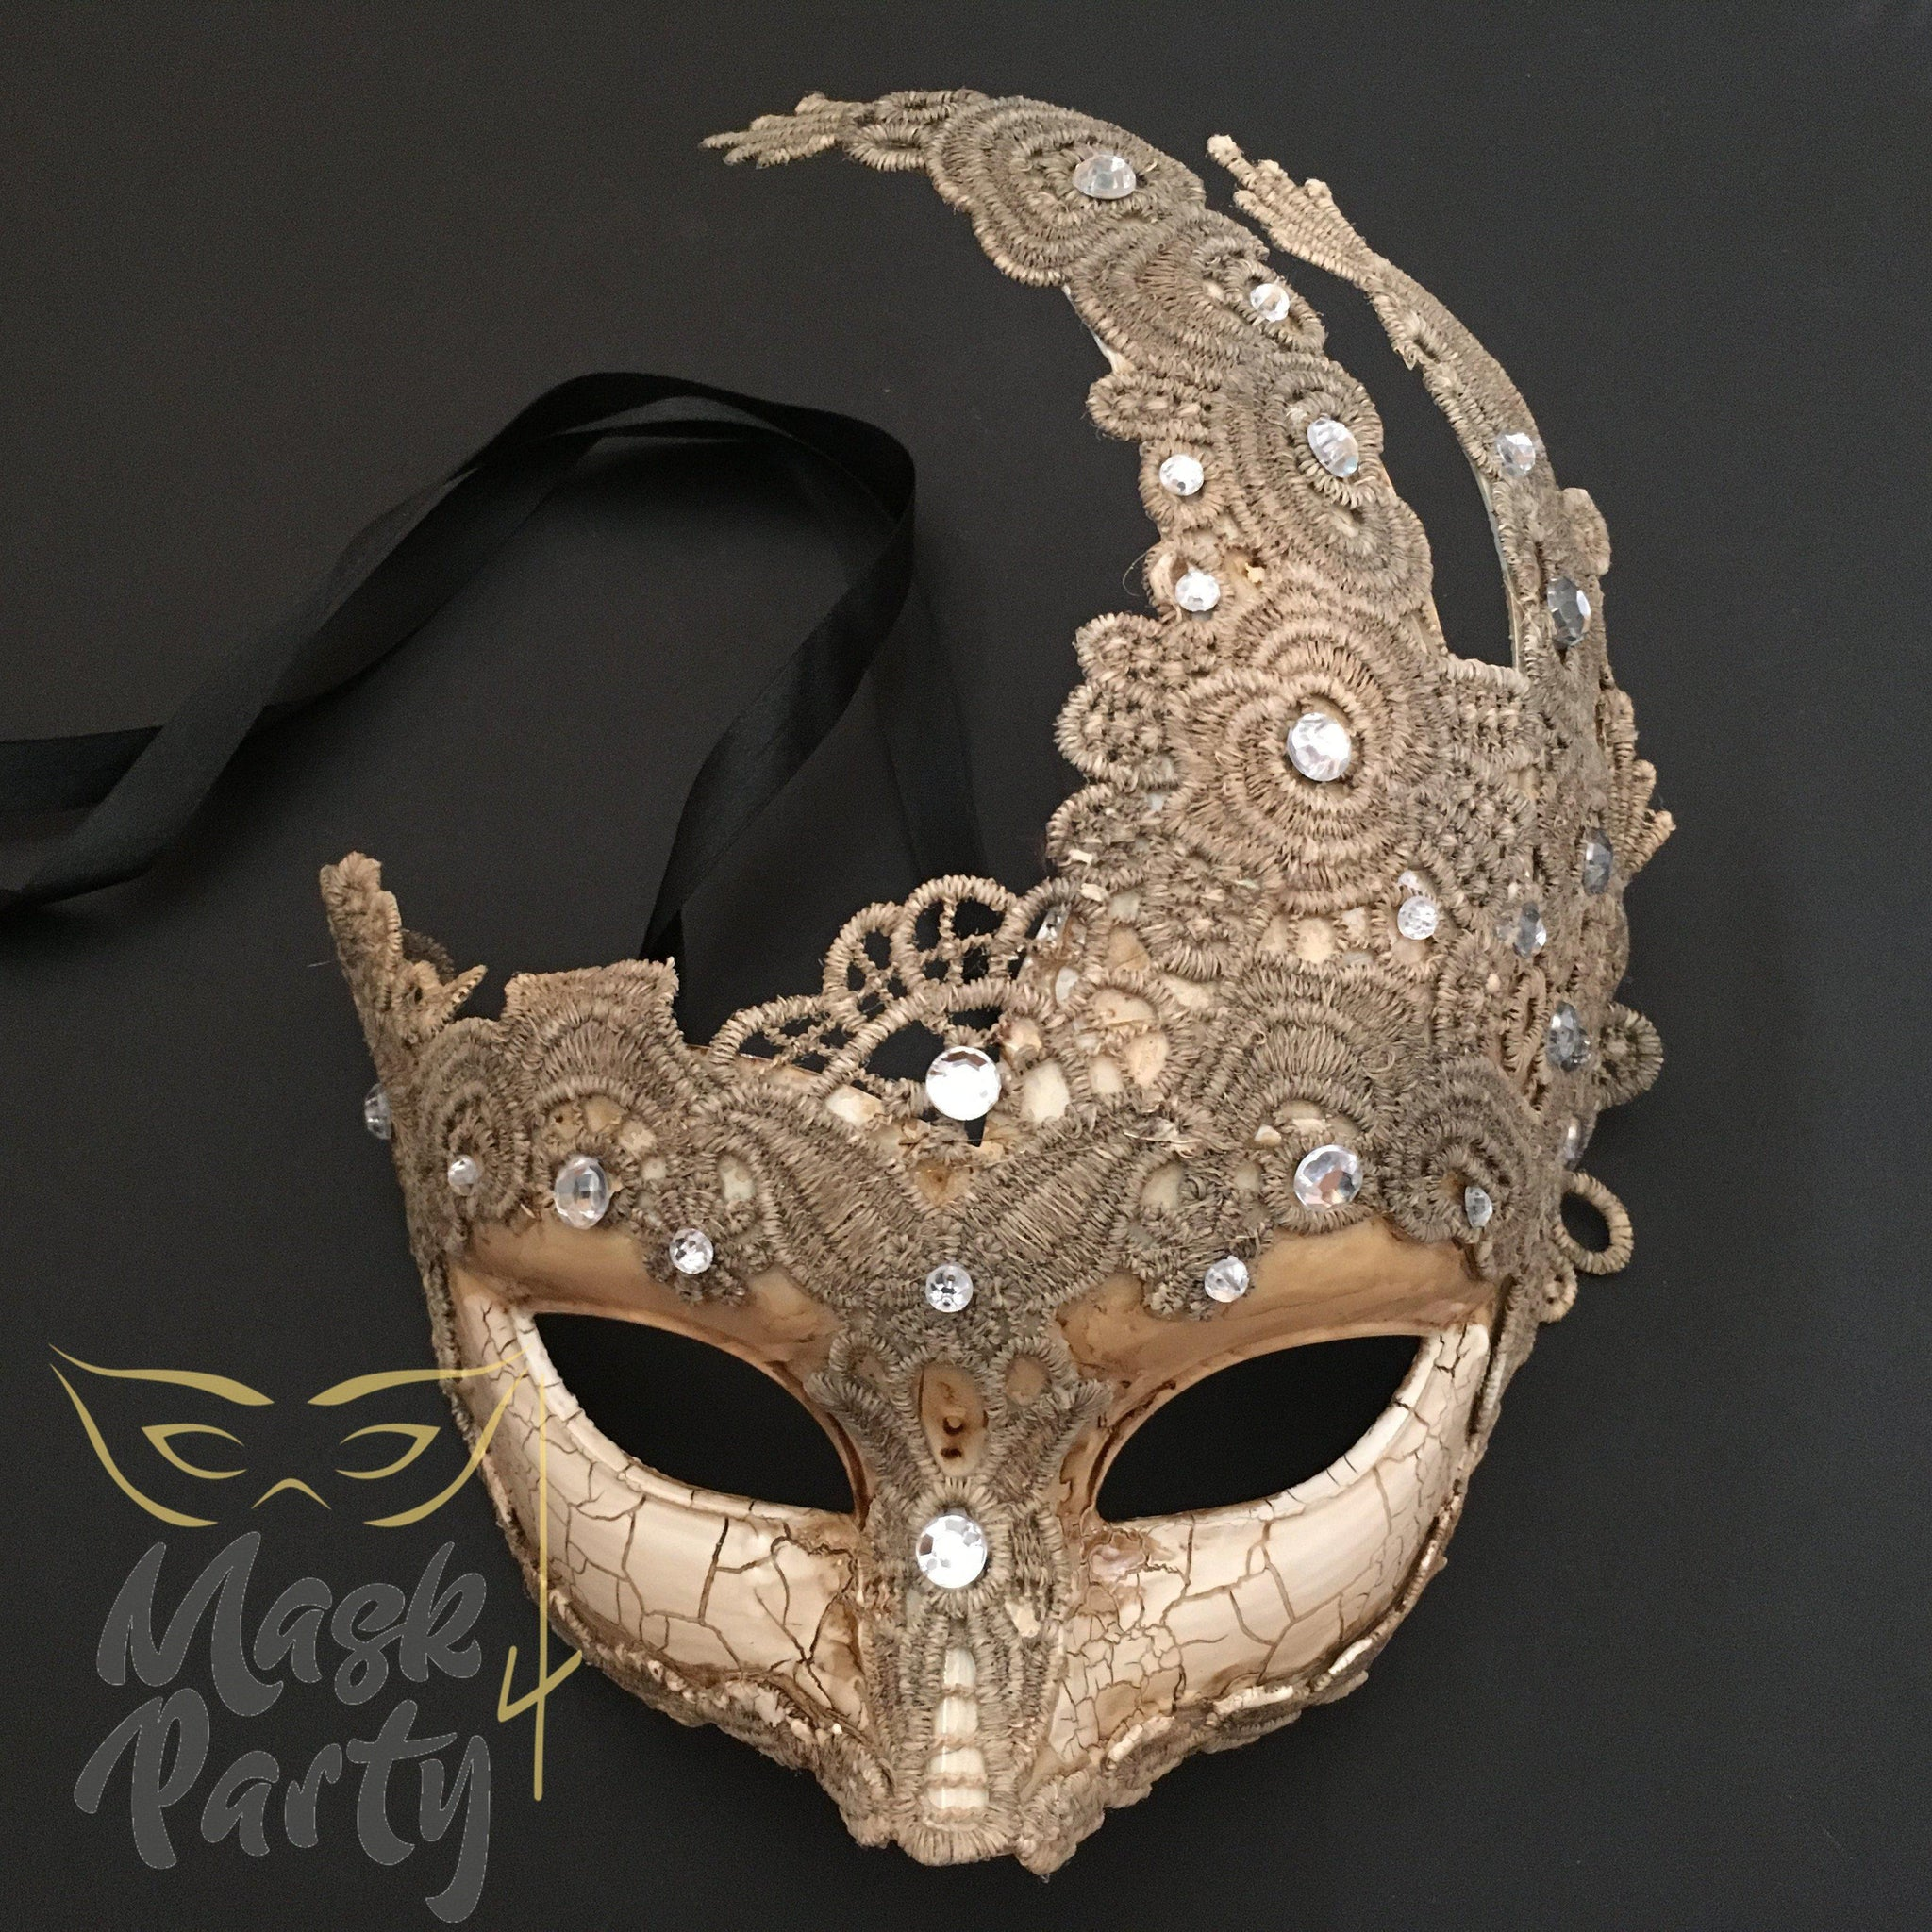 Masquerade Mask - Brocade Lace Clear Rhinestones - Ivory - Mask4Party